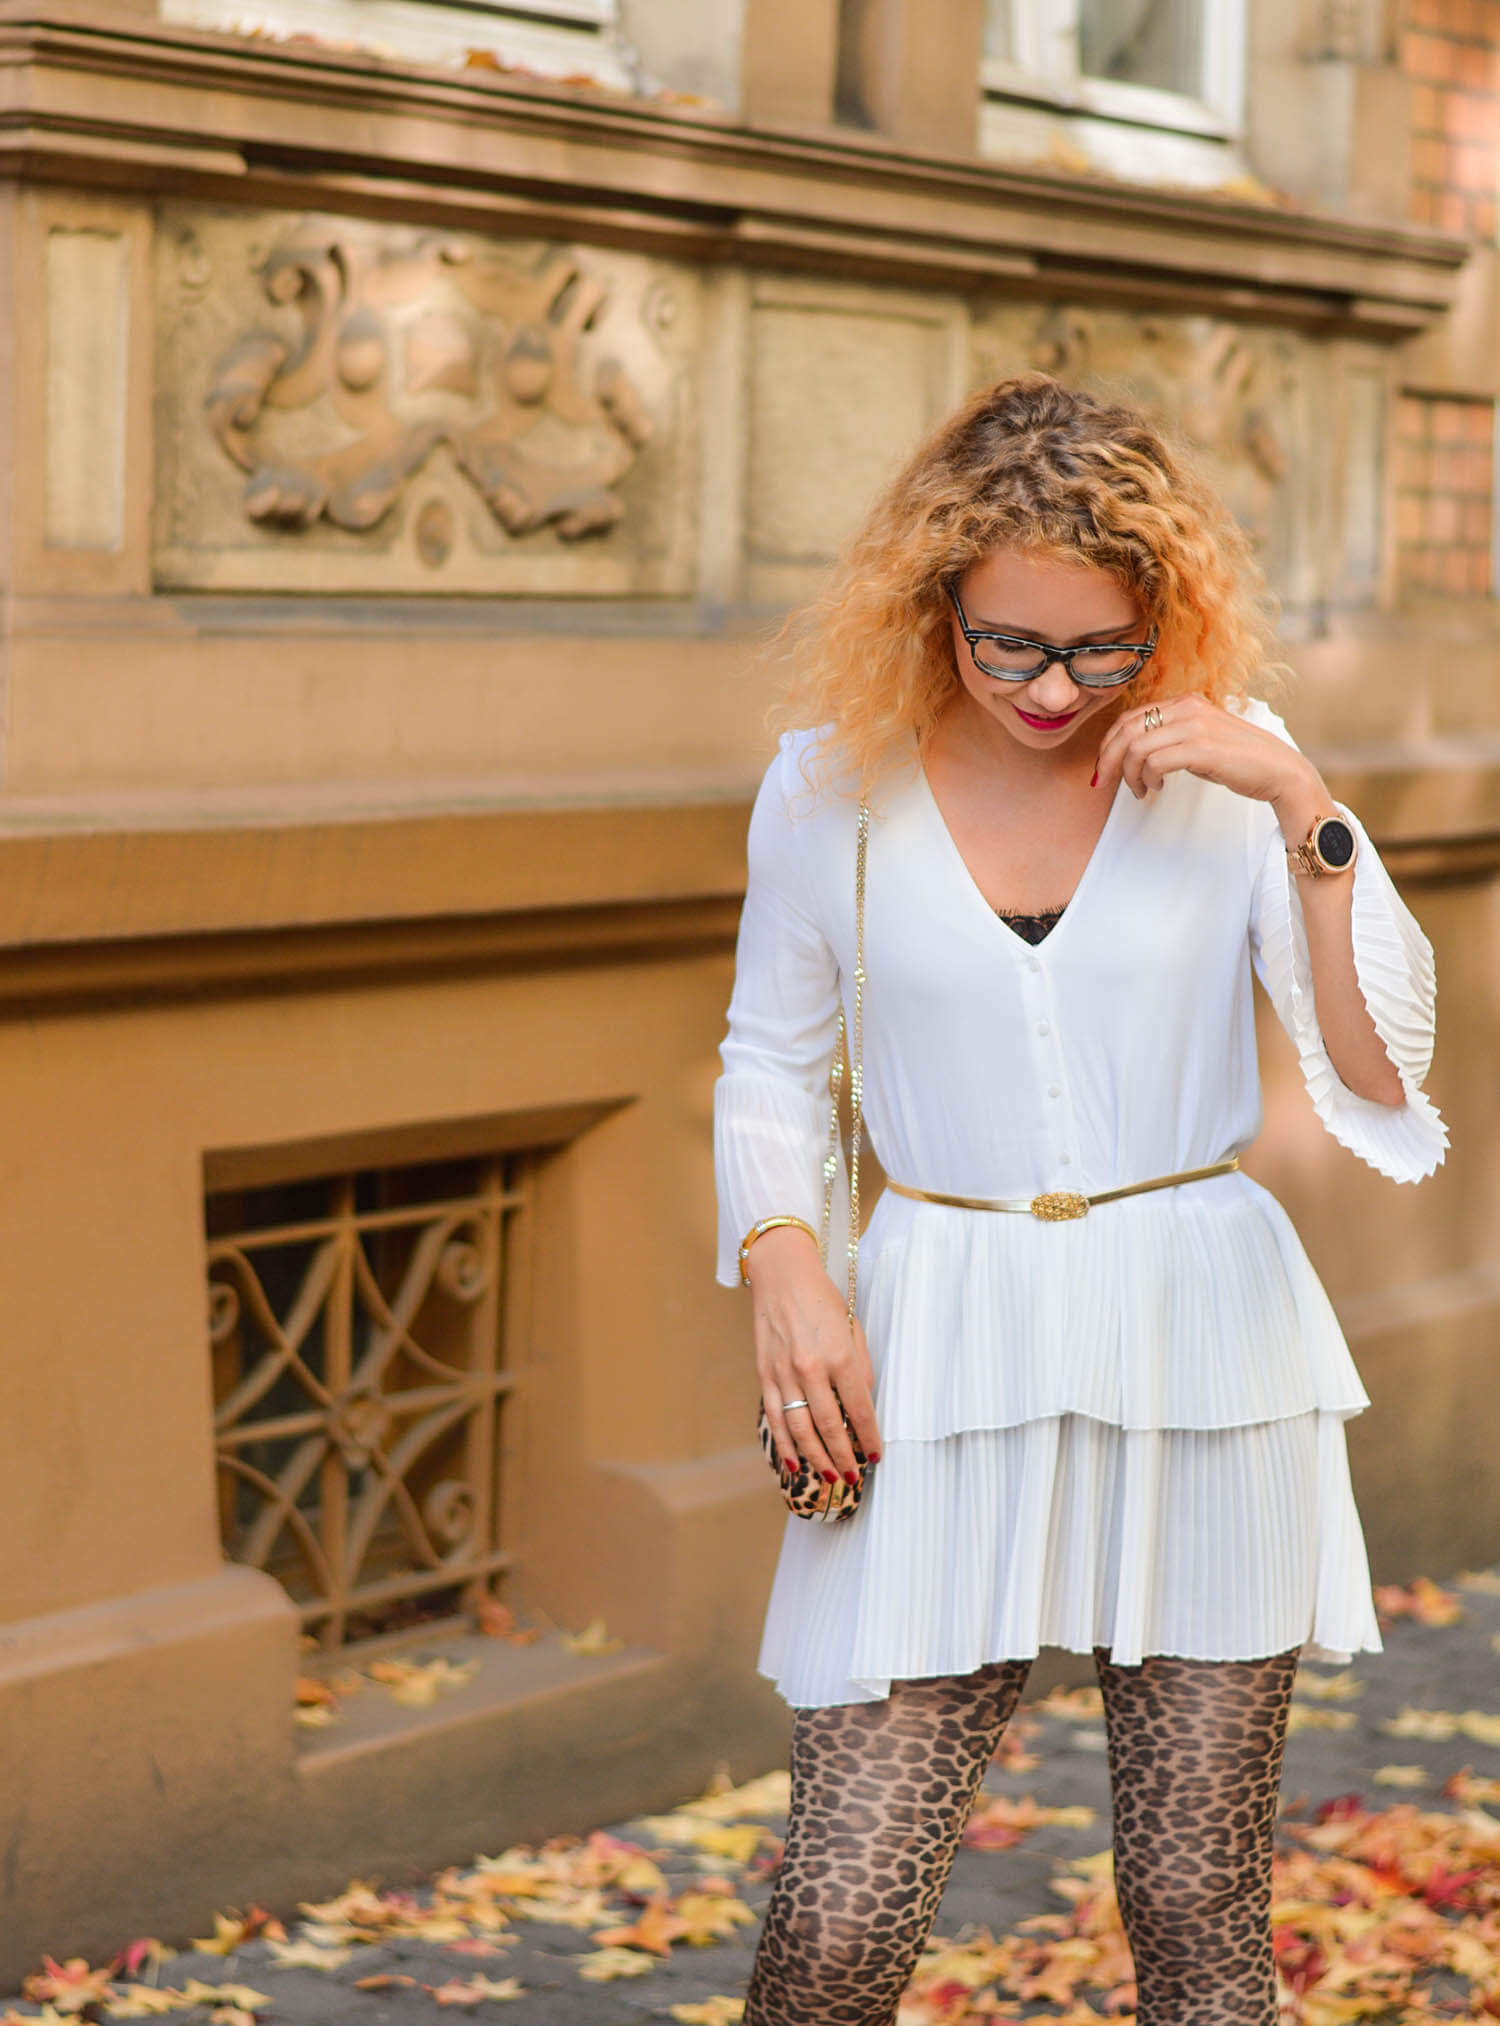 Leopard-Patterns-White-Blouse-New-Fall-Trend-Outfit-kationette-fashionblogger-germany